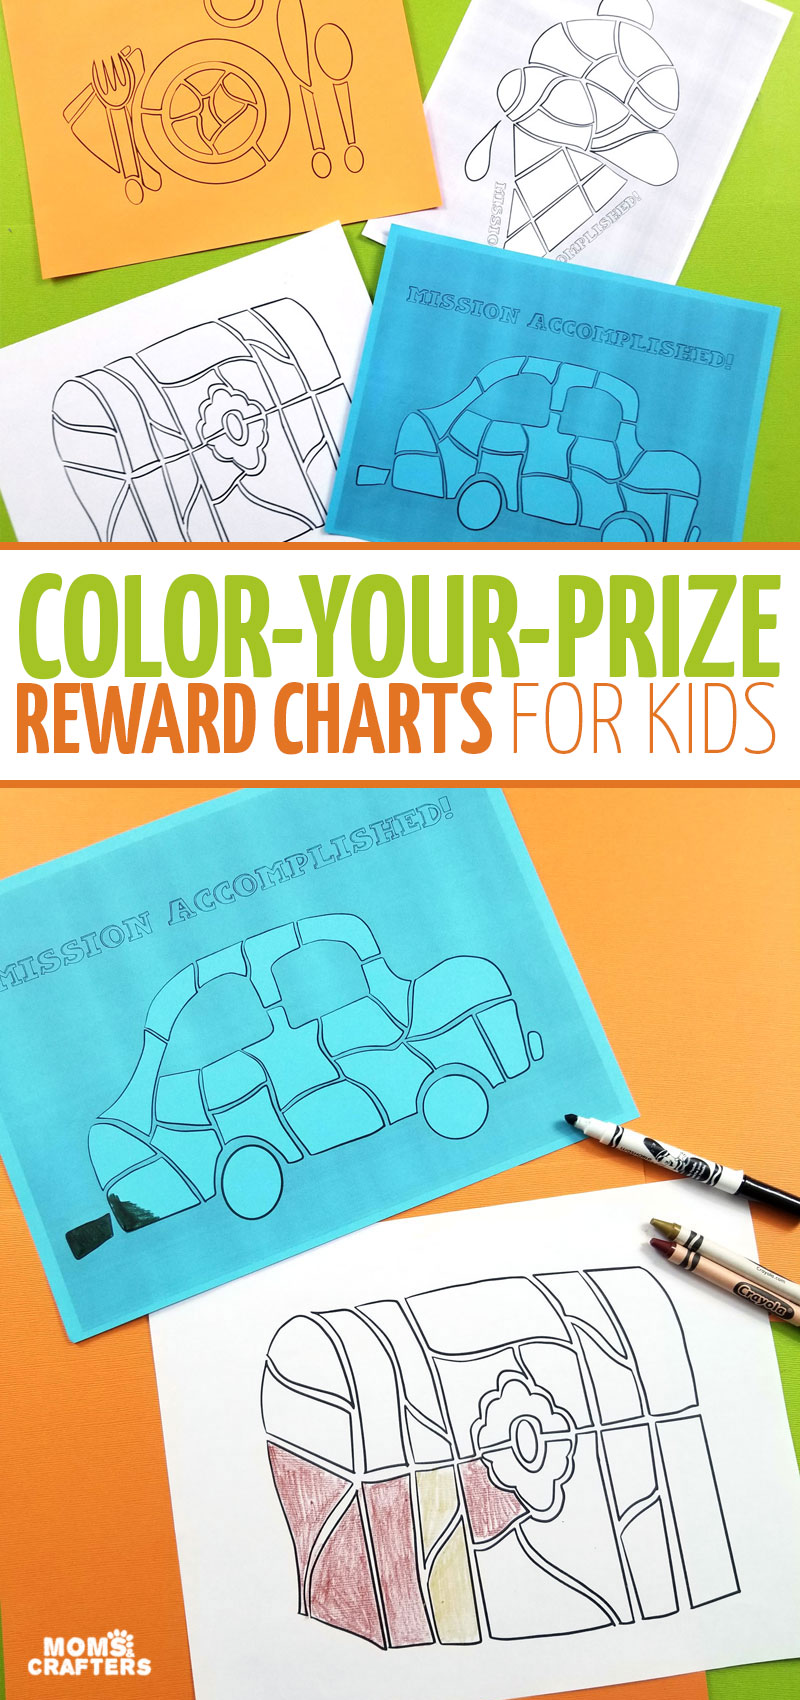 Aren't these color-your-prize rewards charts for kids brilliant? You can use them as chore charts or as potty training charts. includes free printables and tips.